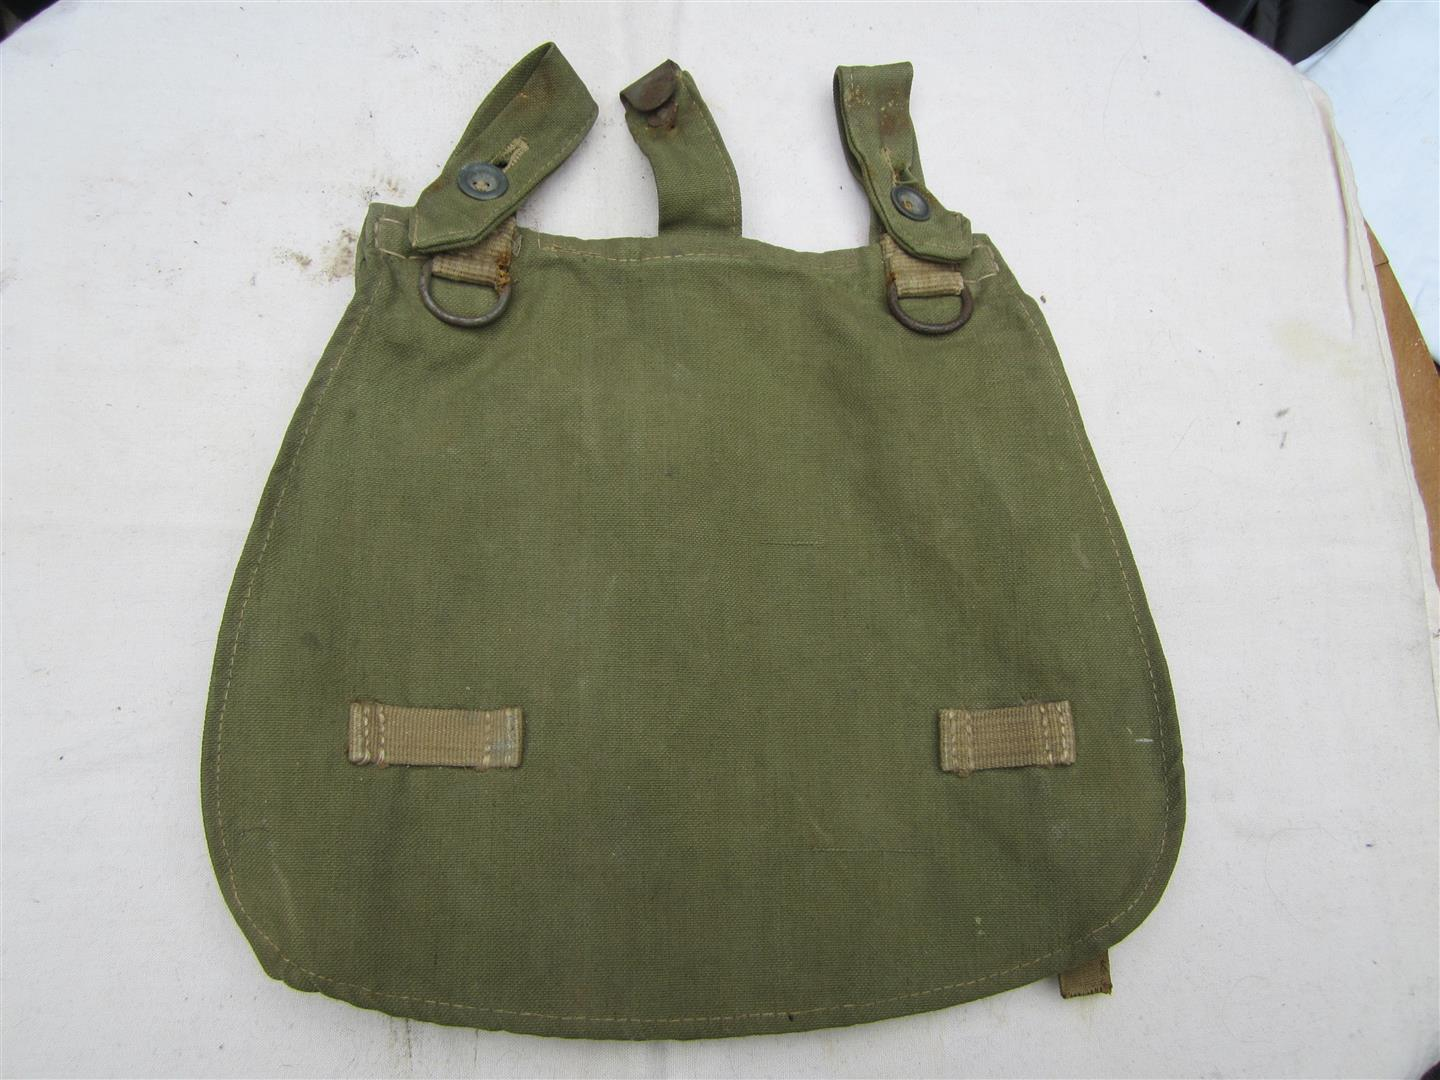 WW2 'DAK' Breadbag